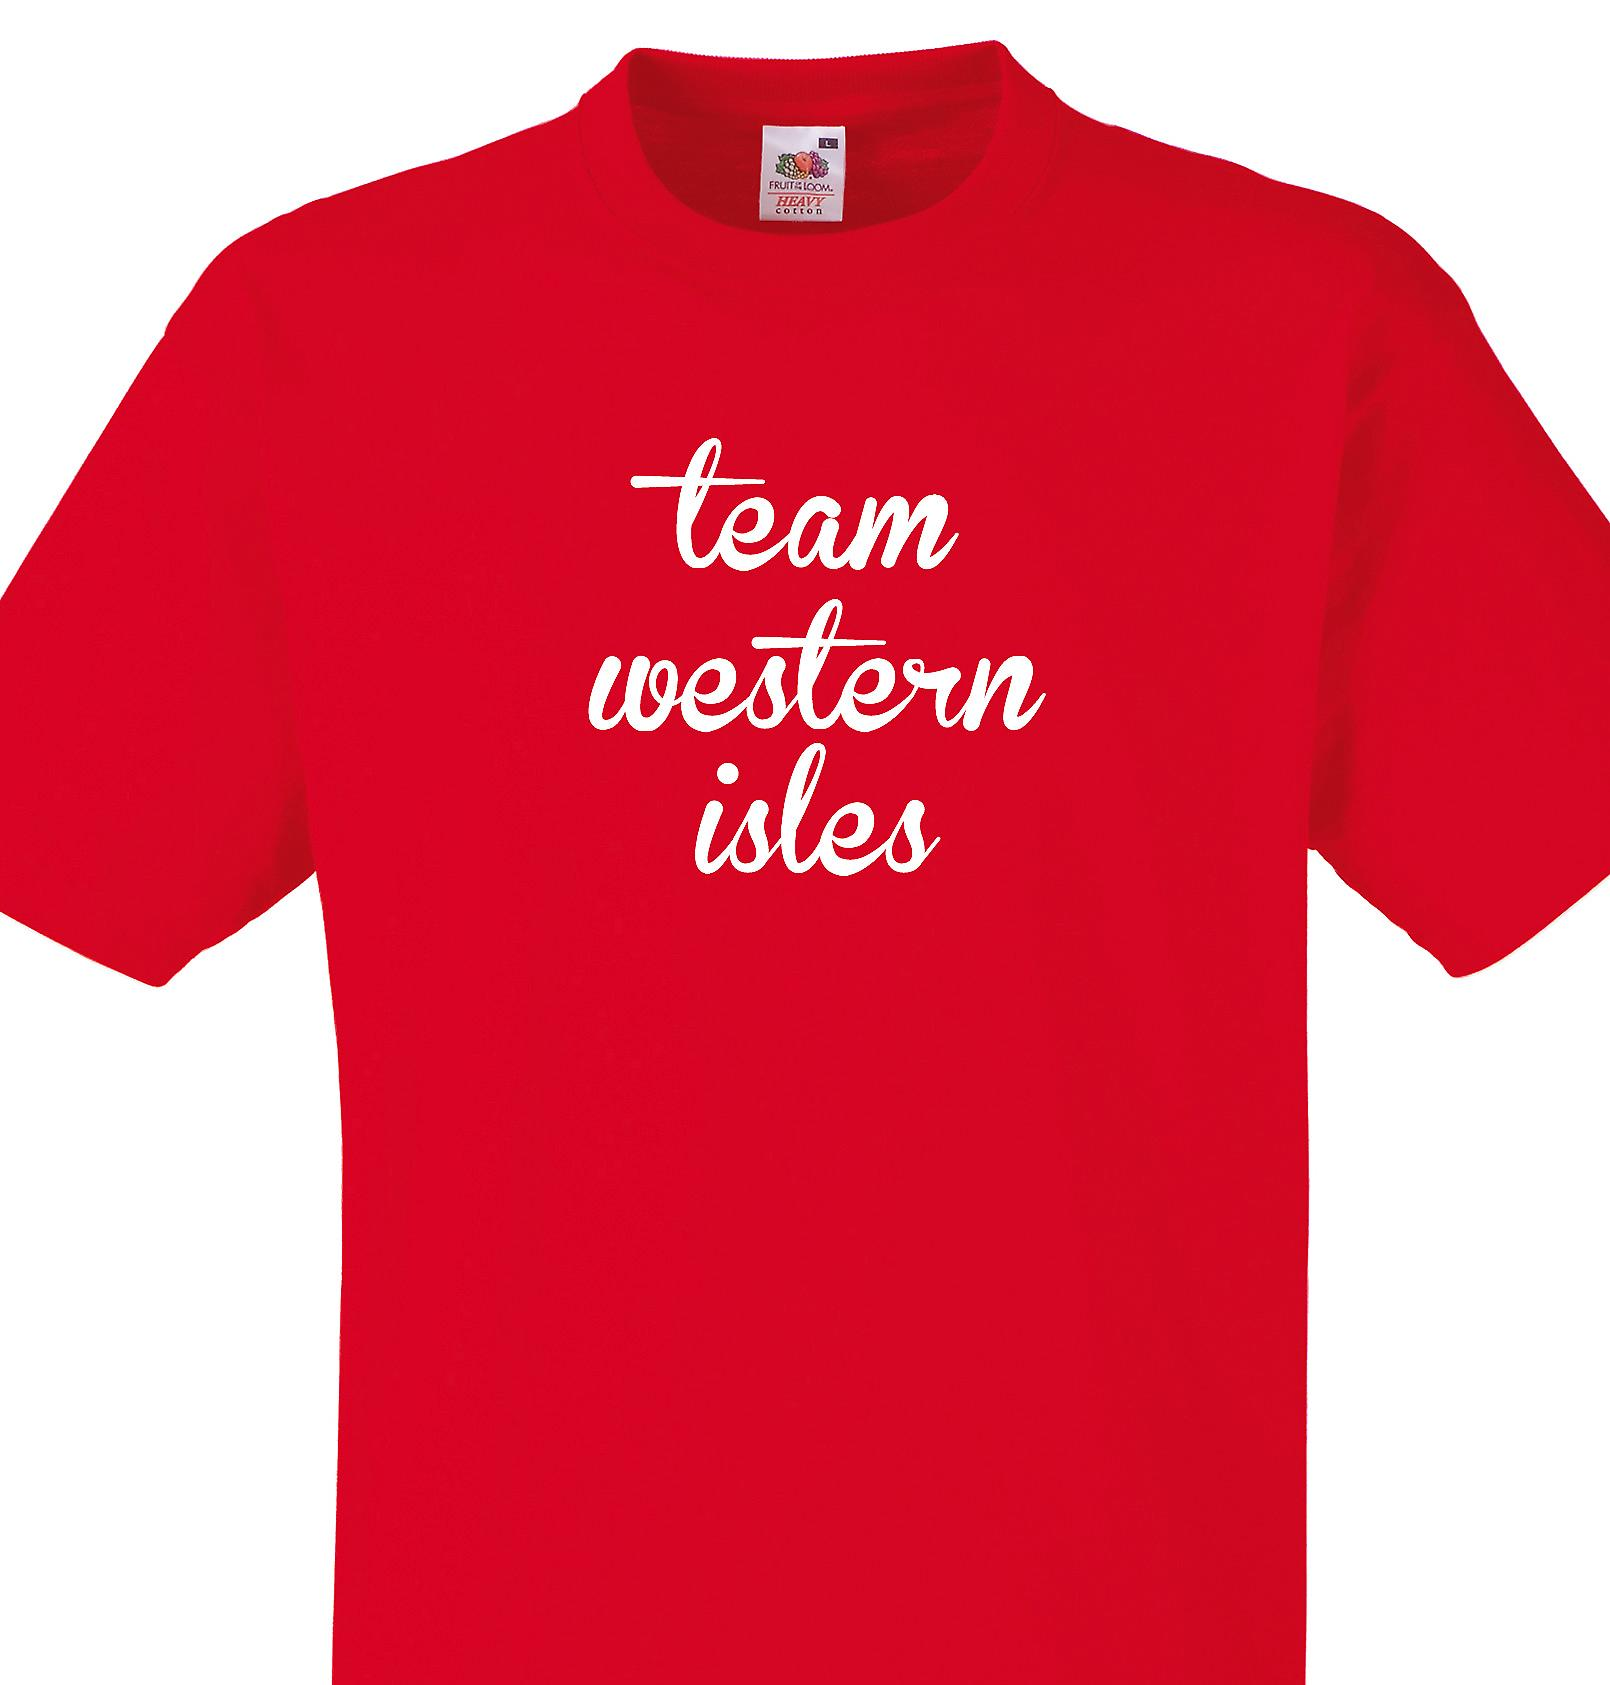 Team Western isles Red T shirt